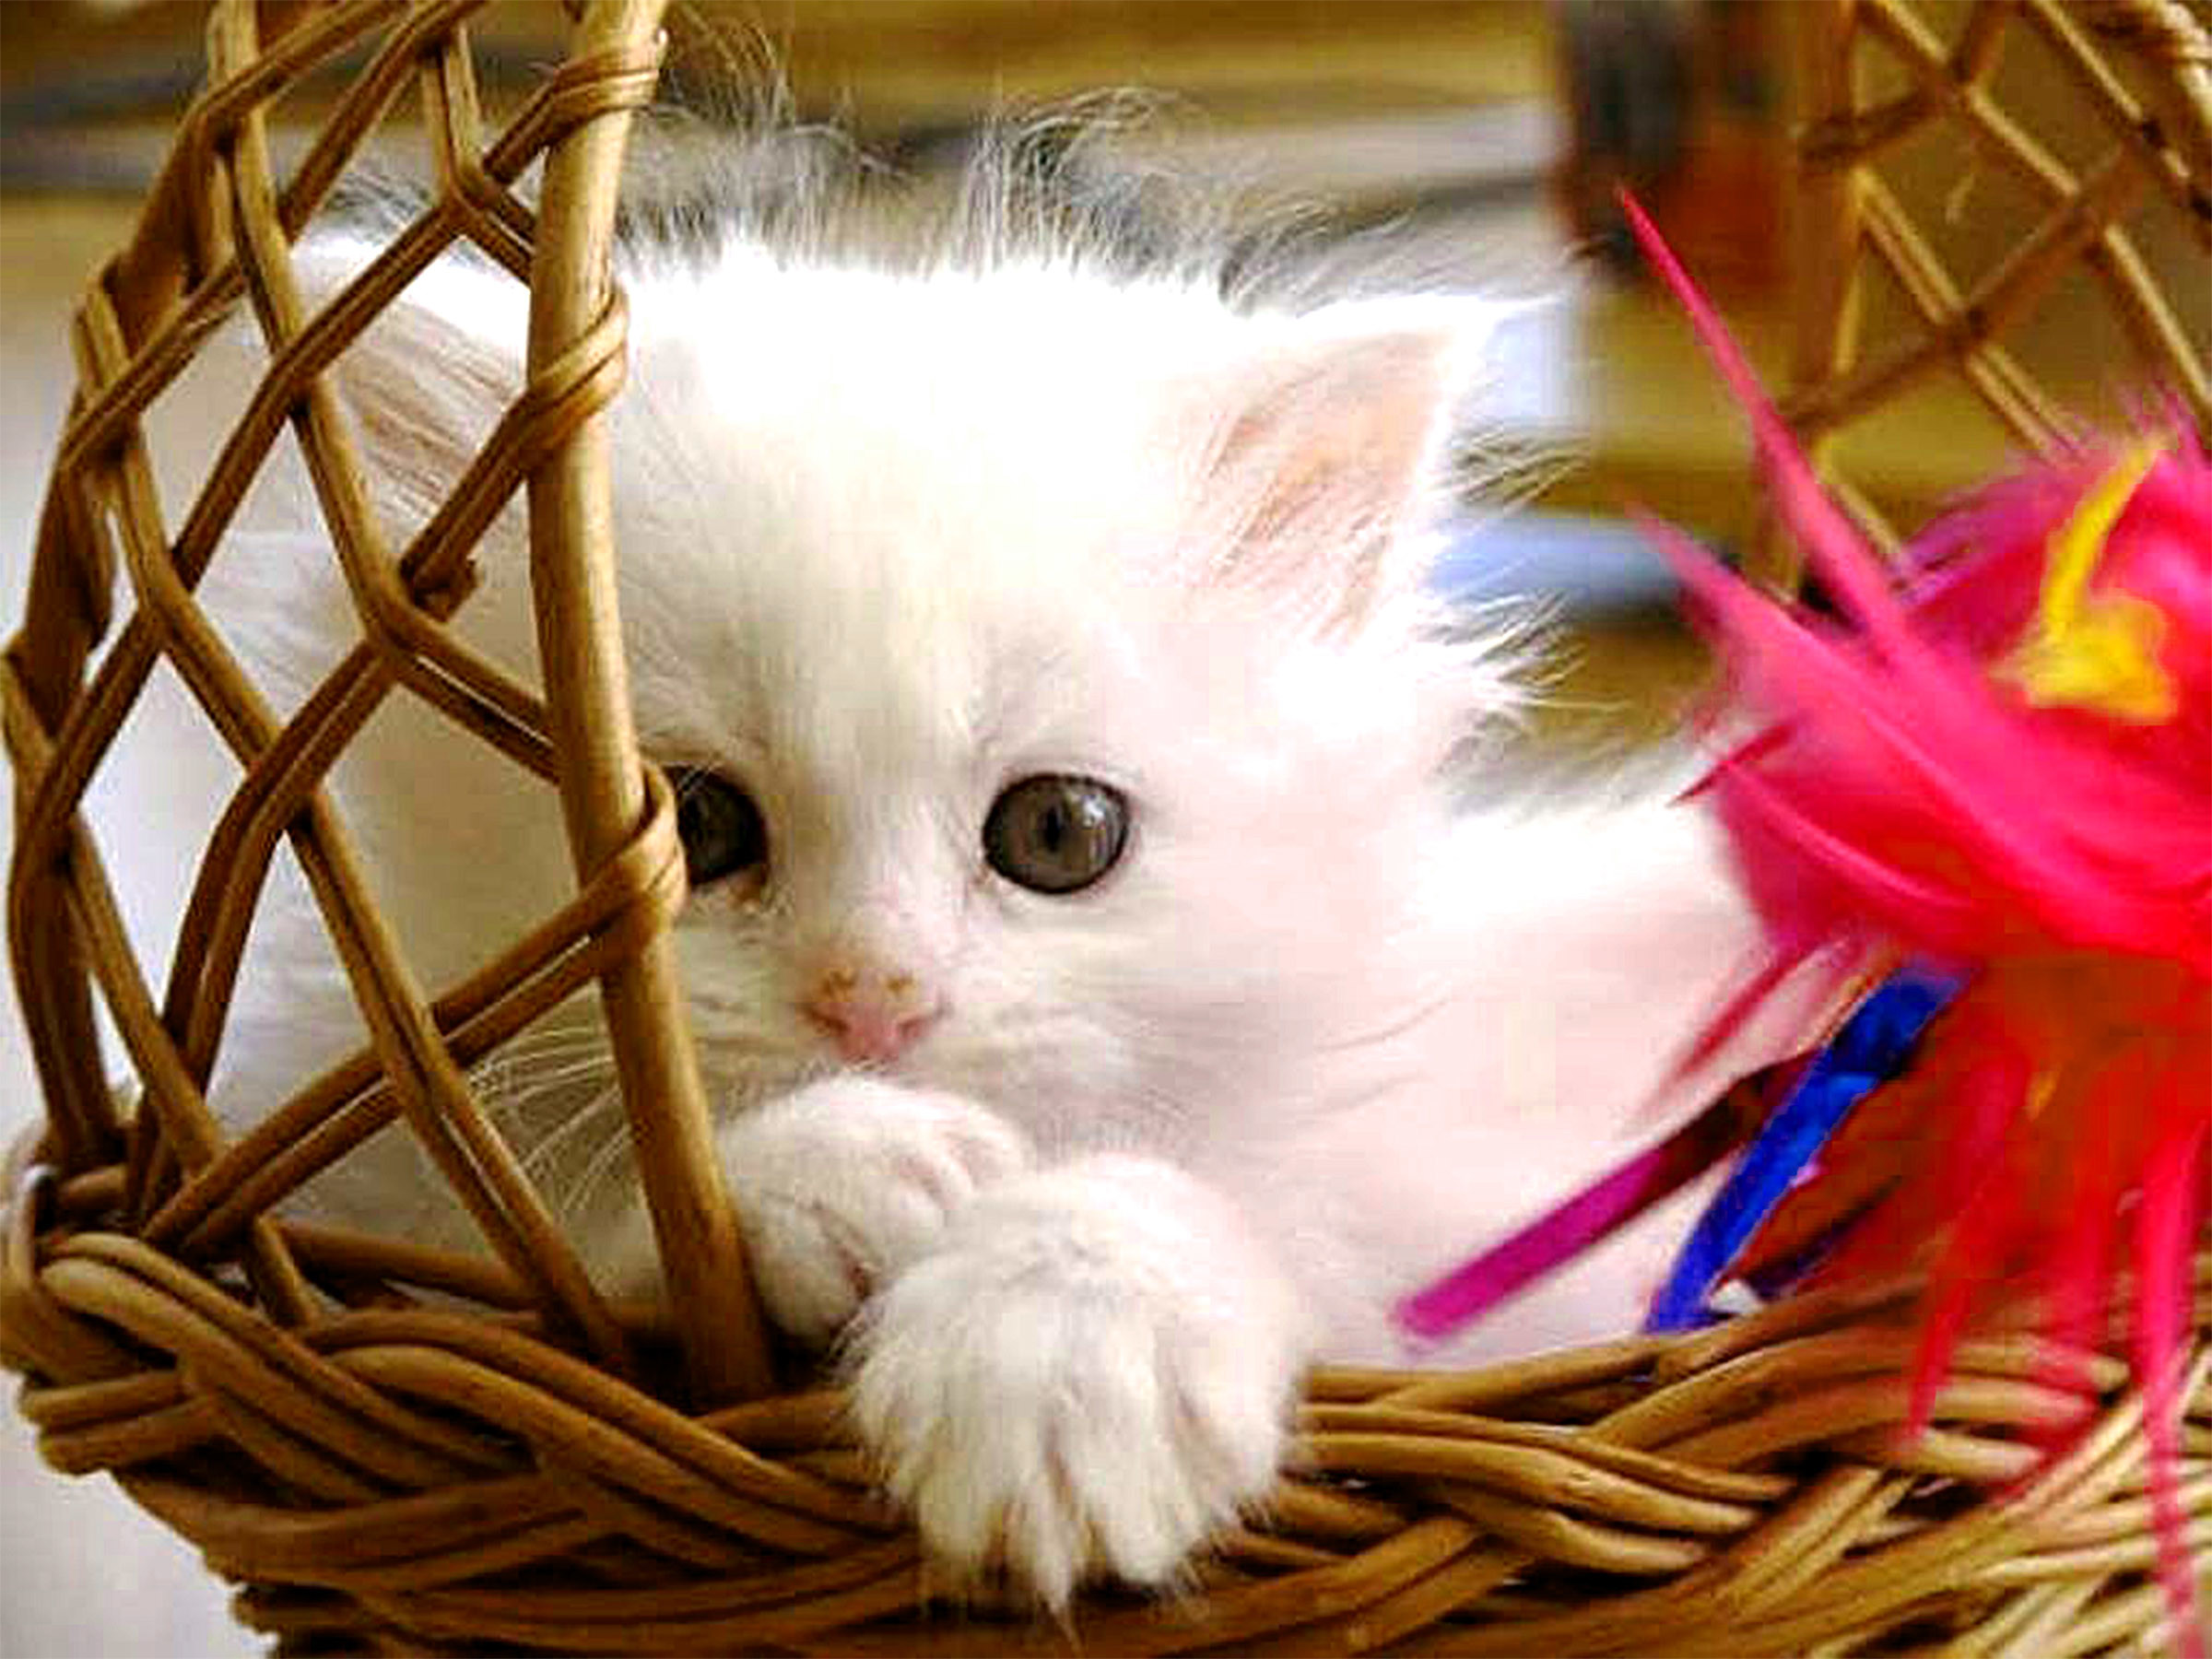 2400x1800 Free Desktop Wallpapers And Backgrounds With Sweet Baby Cat Kitten